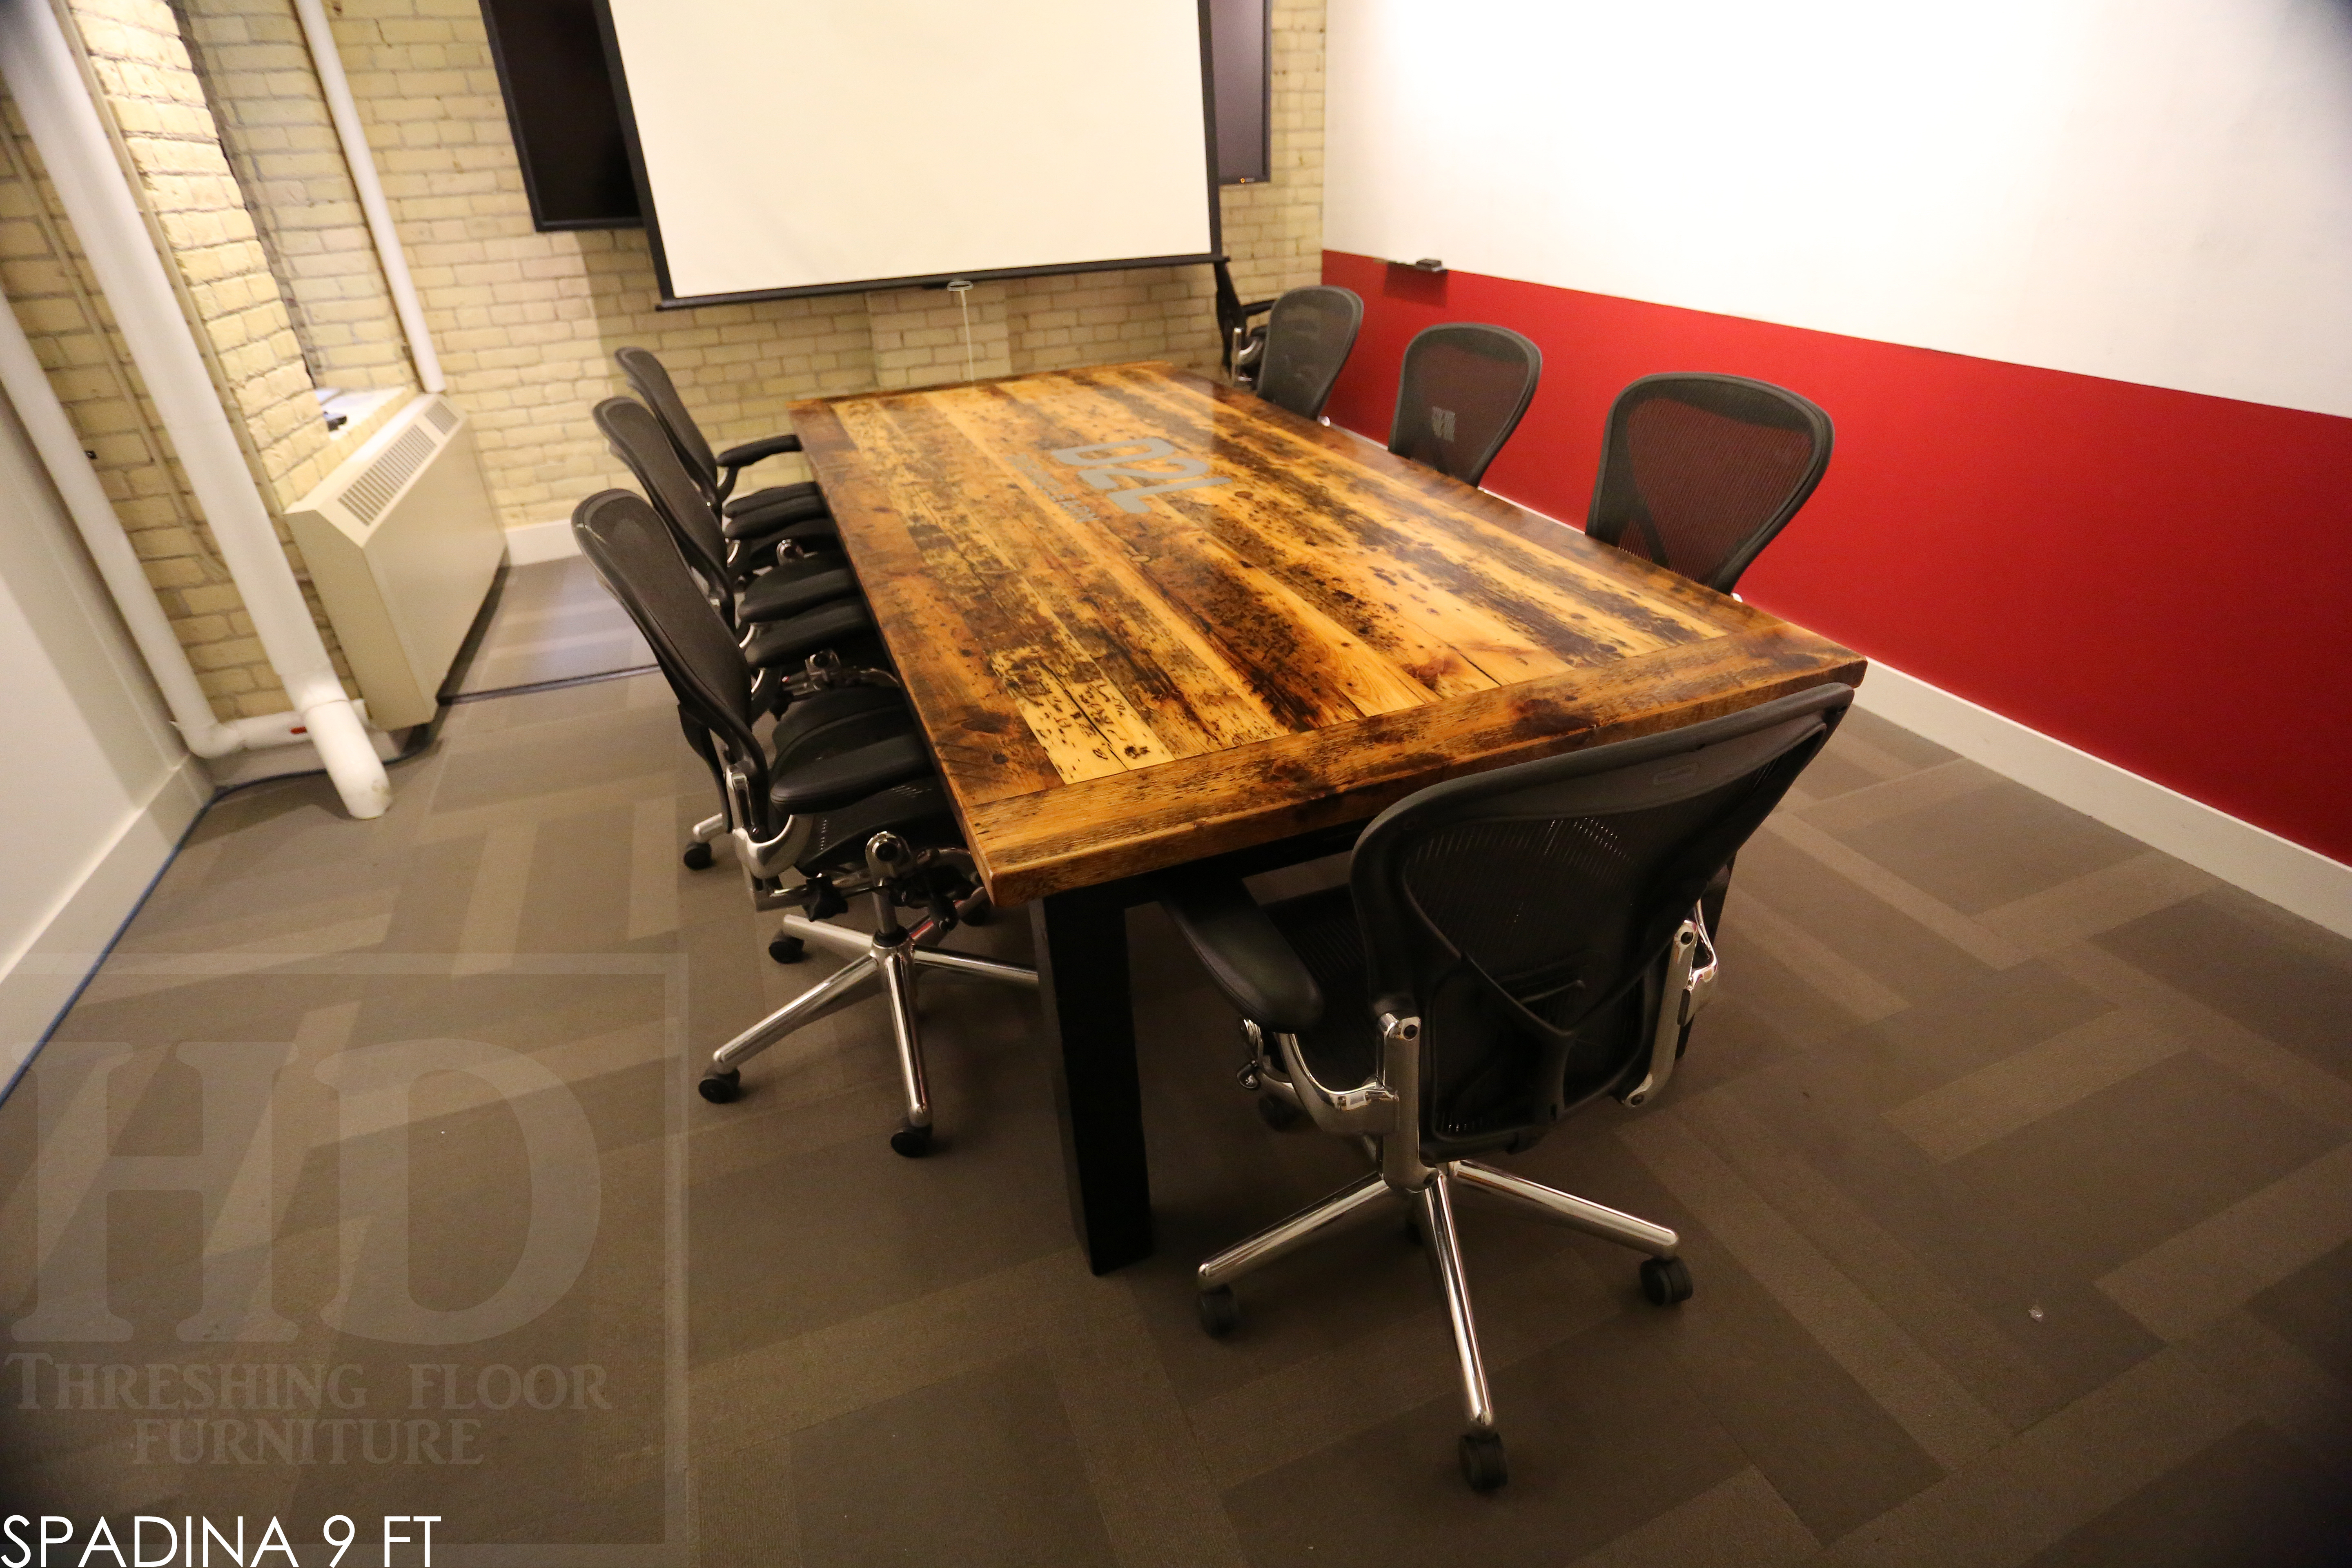 Reclaimed Wood Conference Tables Toronto Ontario Blog - 5 ft conference table